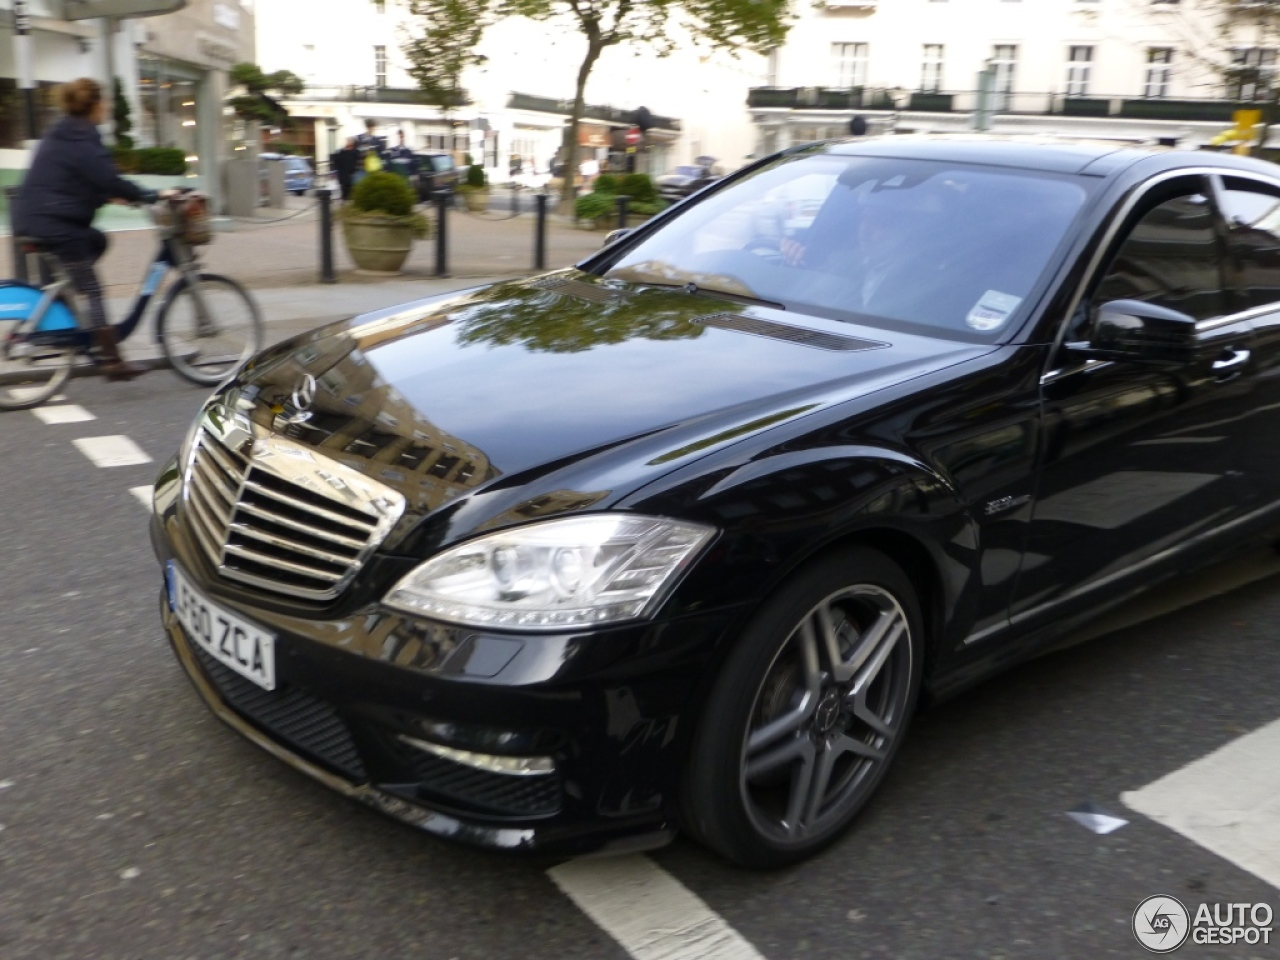 Mercedes benz s 63 amg w221 2011 21 november 2012 for Mercedes benz w221 price